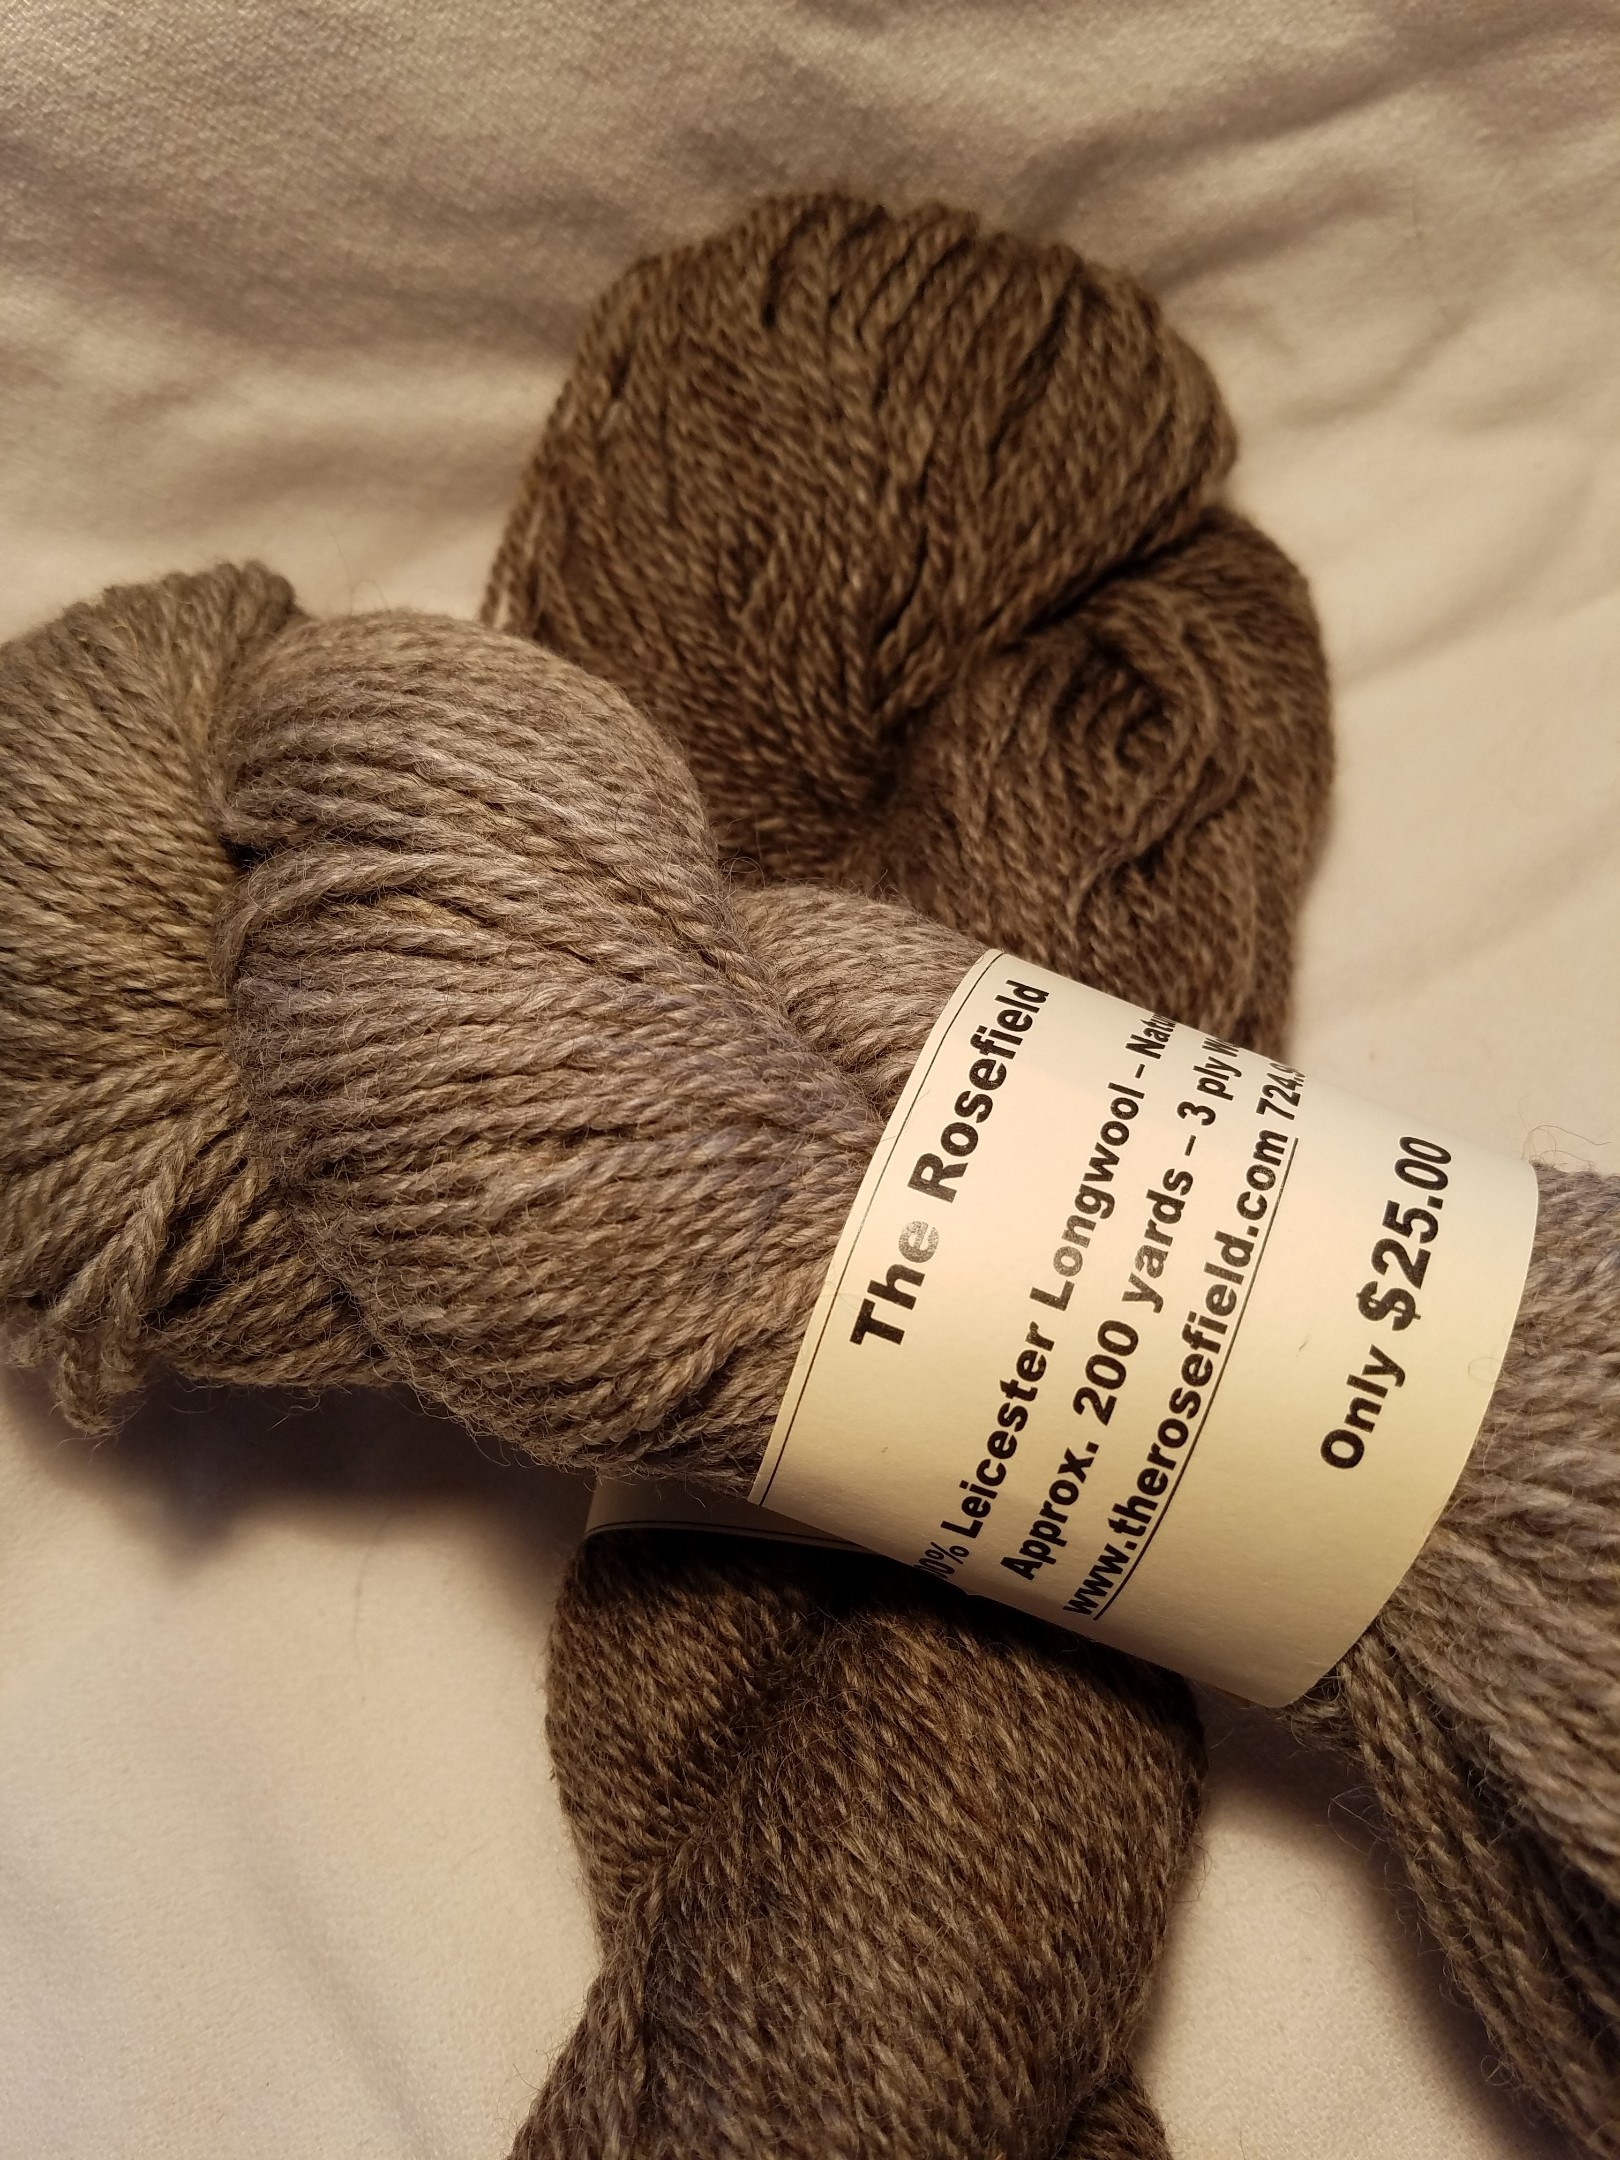 7. Lt/Dk Gray Leicester Longwool 3 ply Worsted